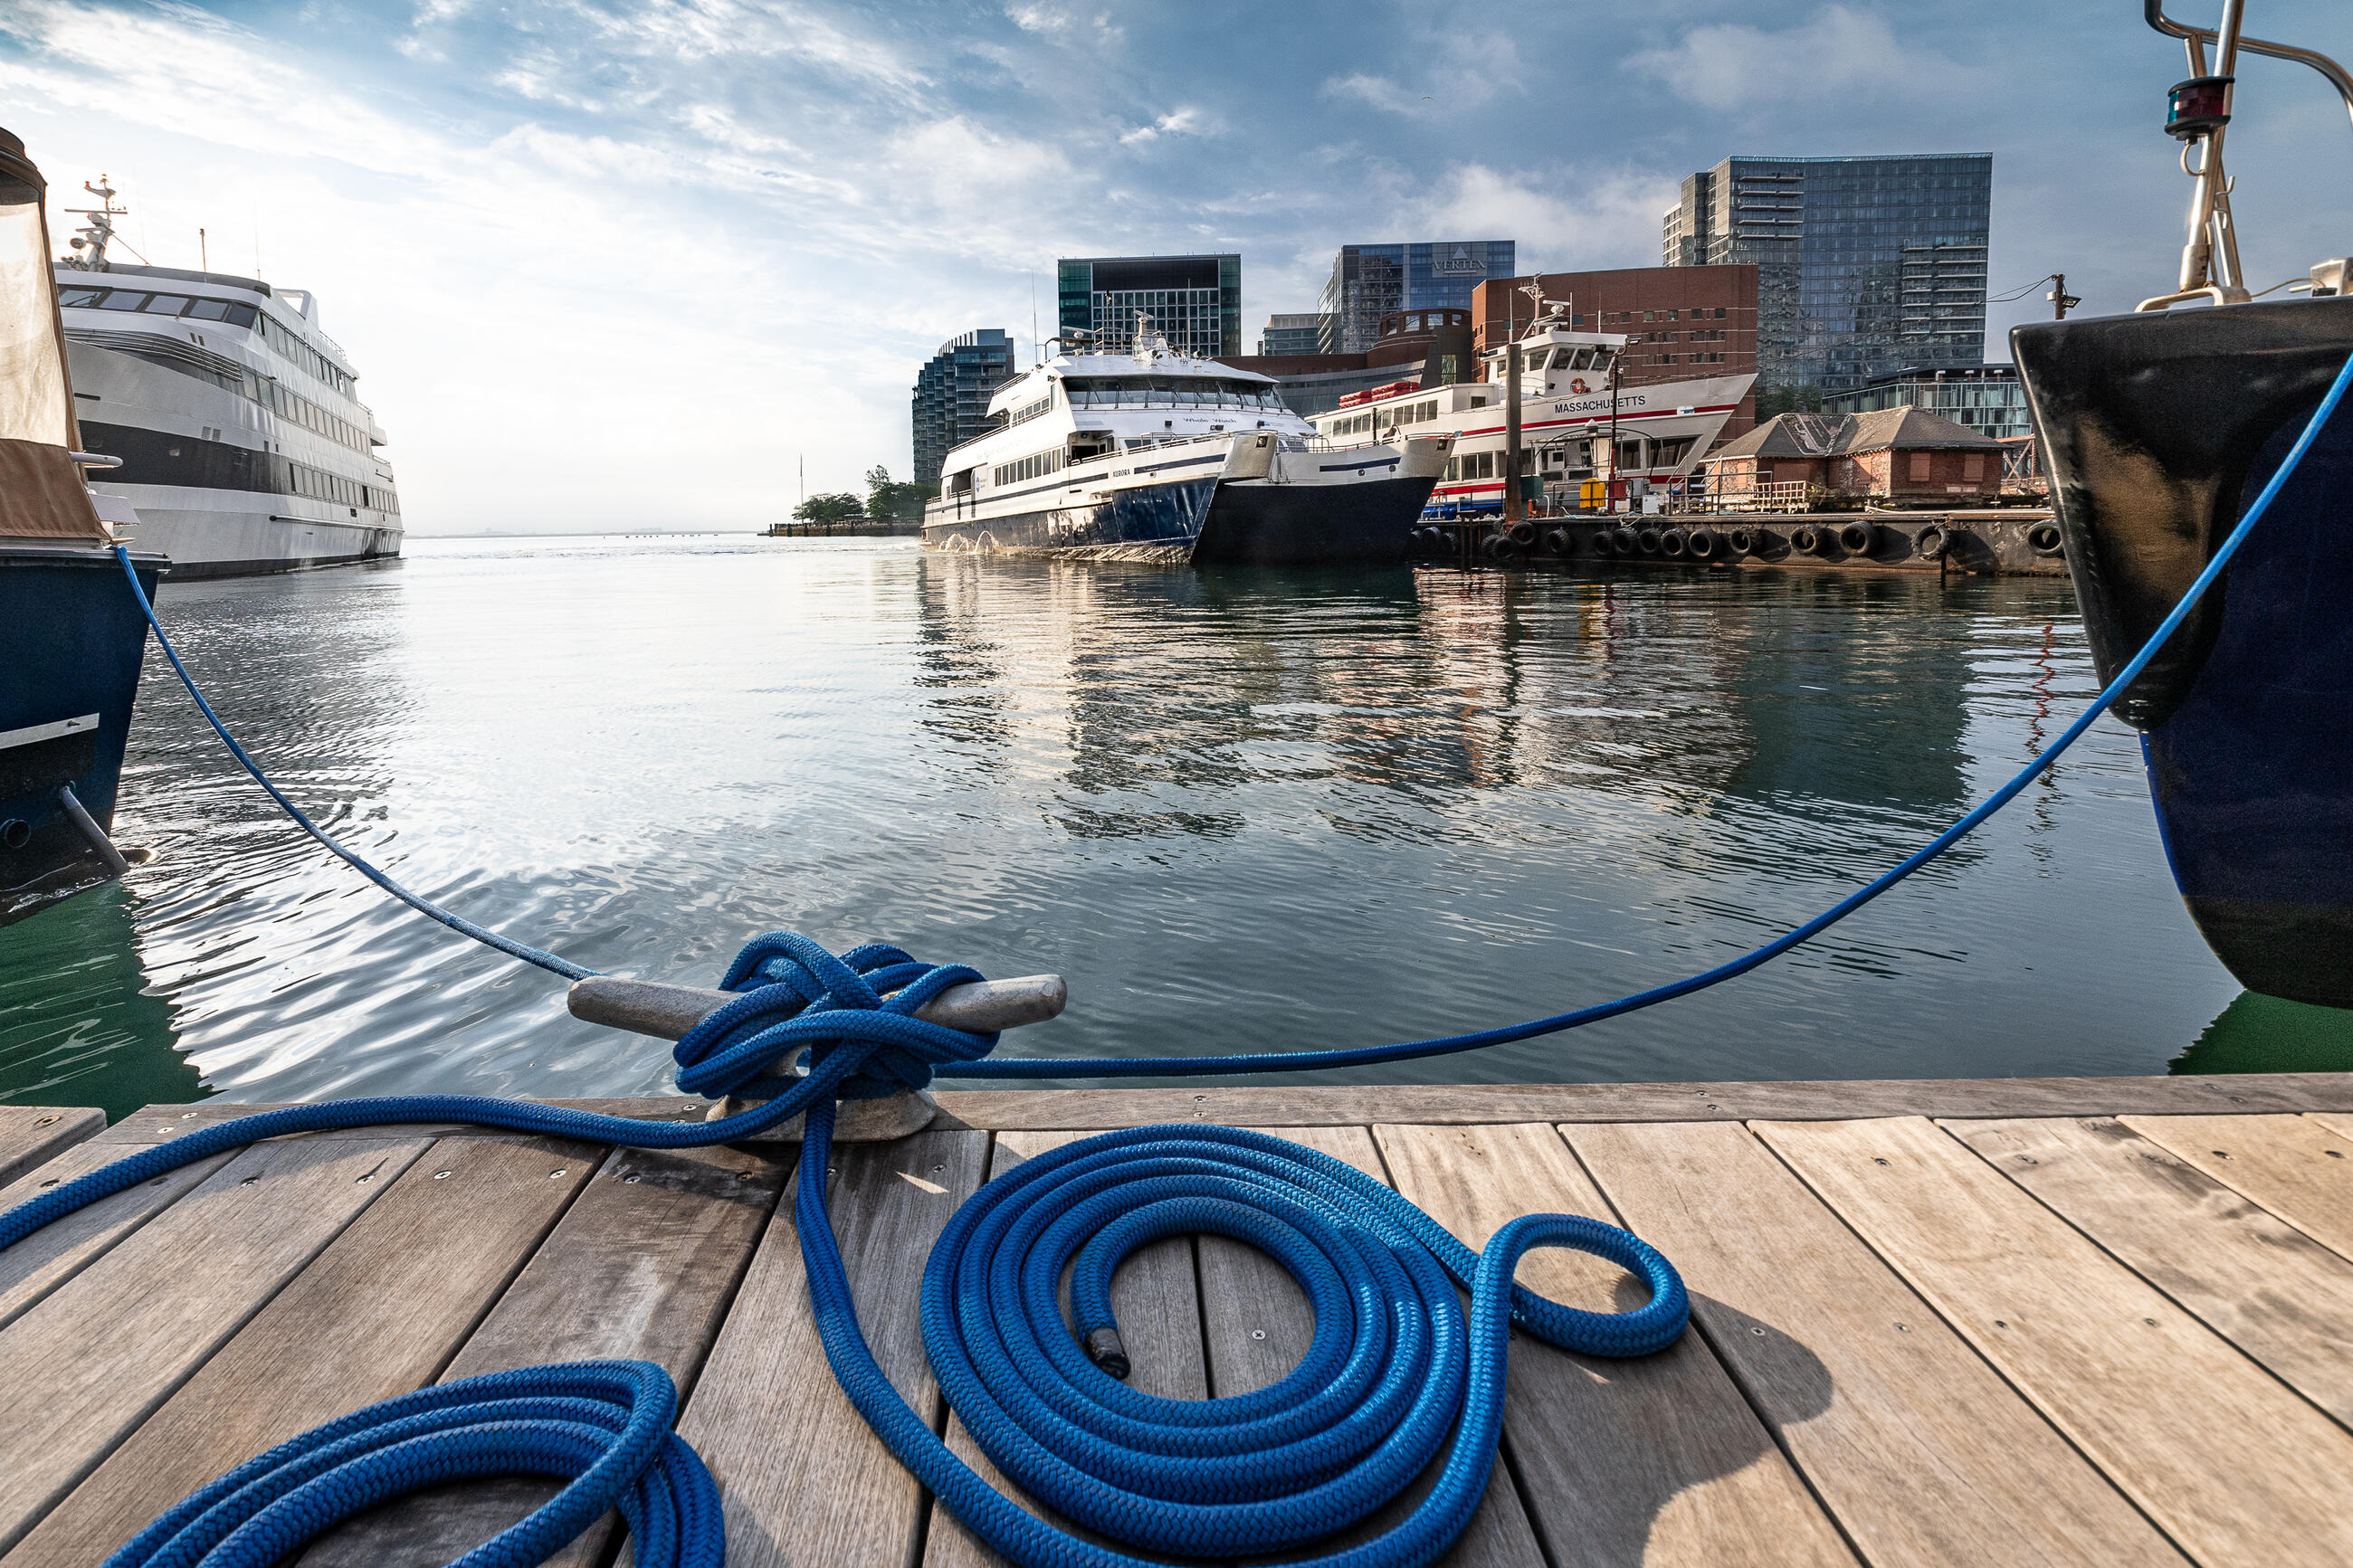 A photo of a ferry in the water, taken from the Rowes Wharf dock. There's a large blue rope tied to the dock in the foreground.